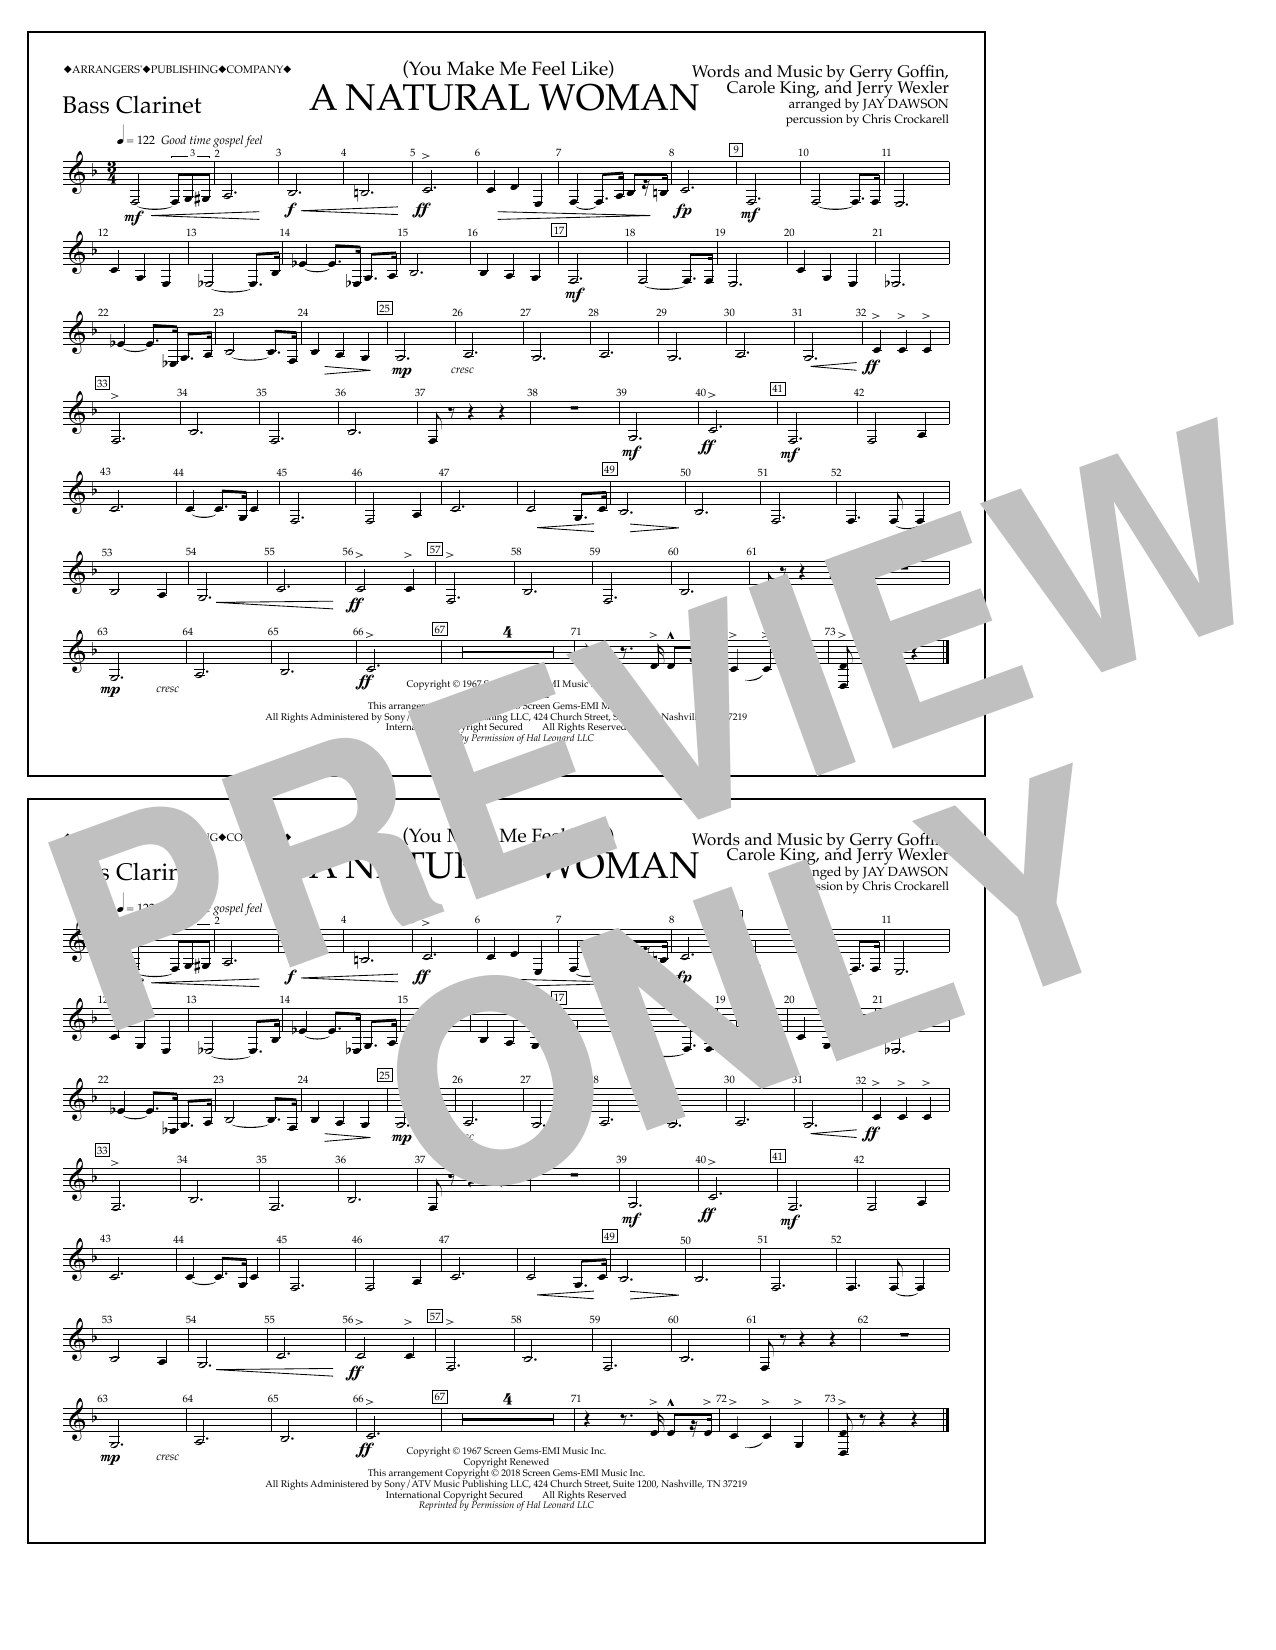 Download Aretha Franklin '(You Make Me Feel Like) A Natural Woman (arr. Jay Dawson) - Bass Clarinet' Digital Sheet Music Notes & Chords and start playing in minutes